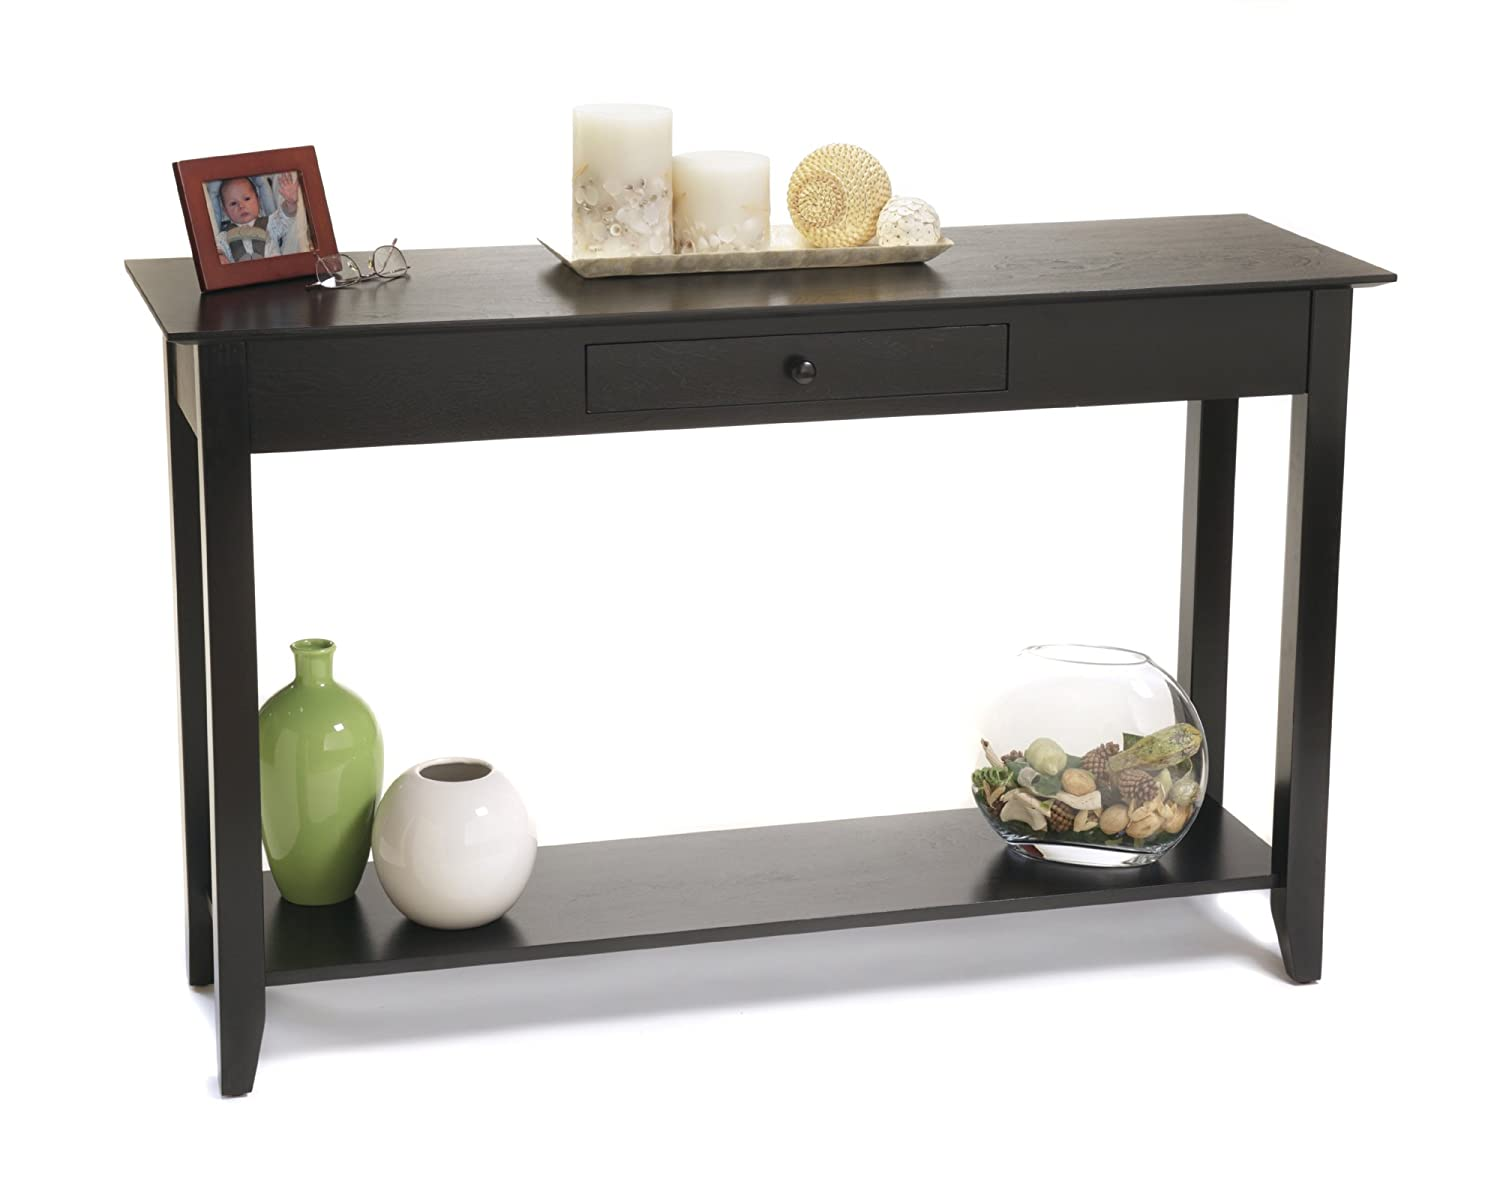 Black Console Table - Native Home Garden Design